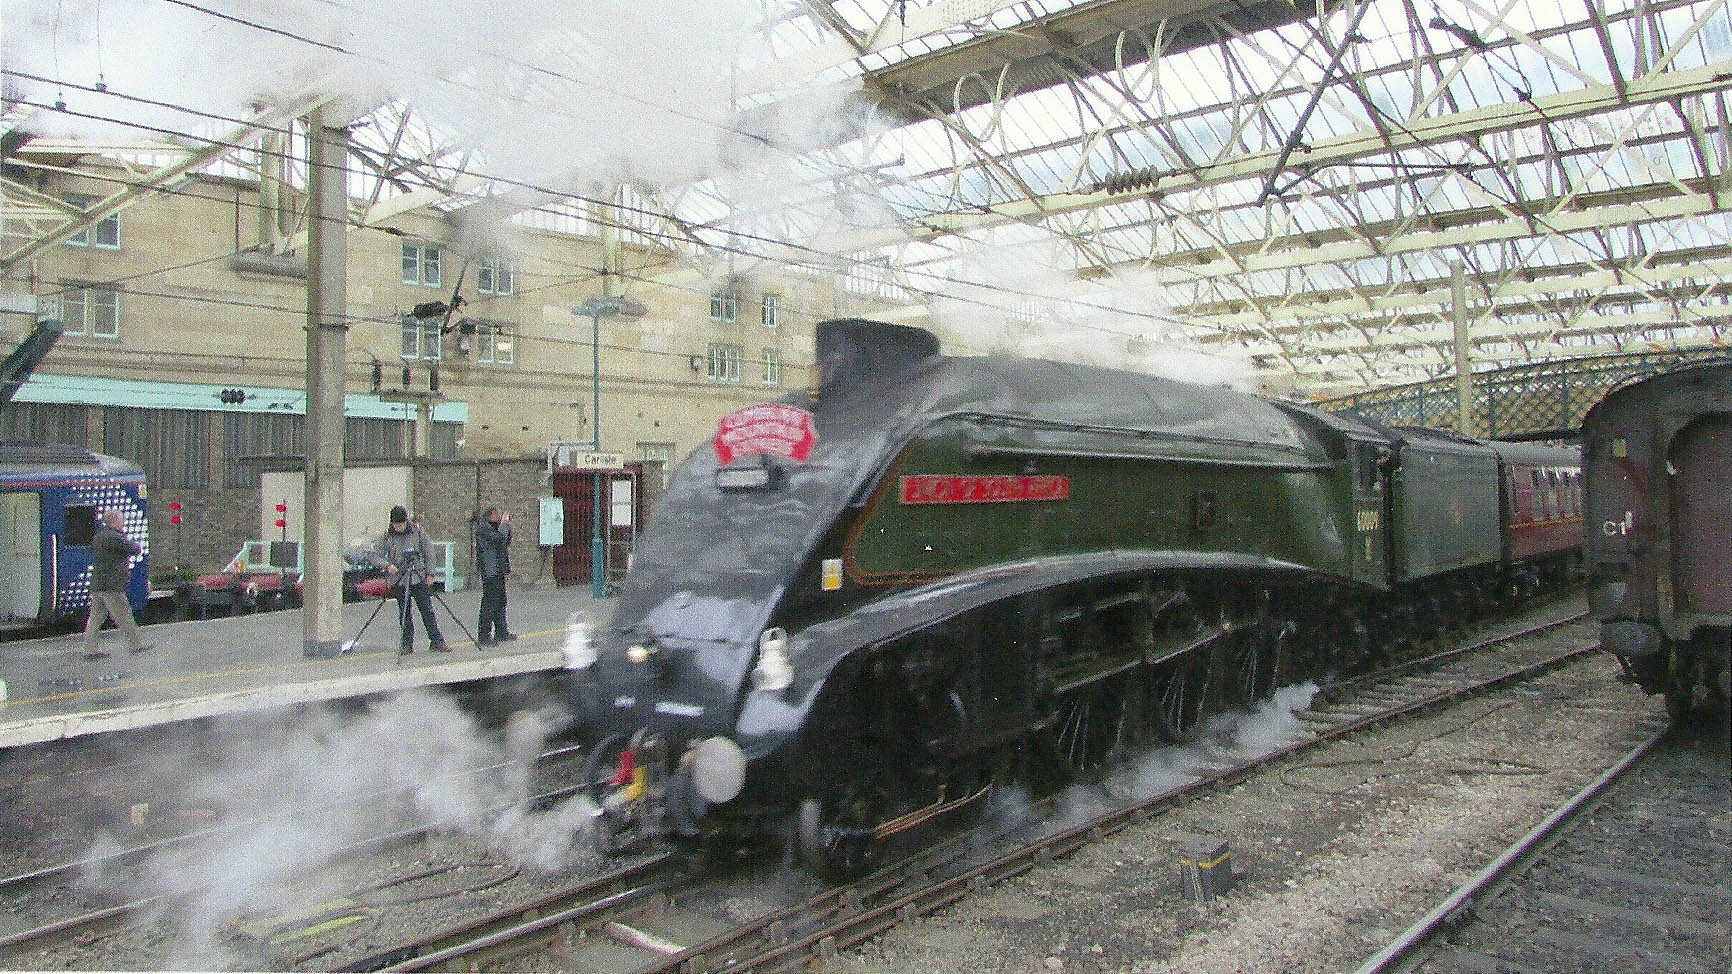 Union-of-South-Africa-We-Are-Railfans-Carlisle